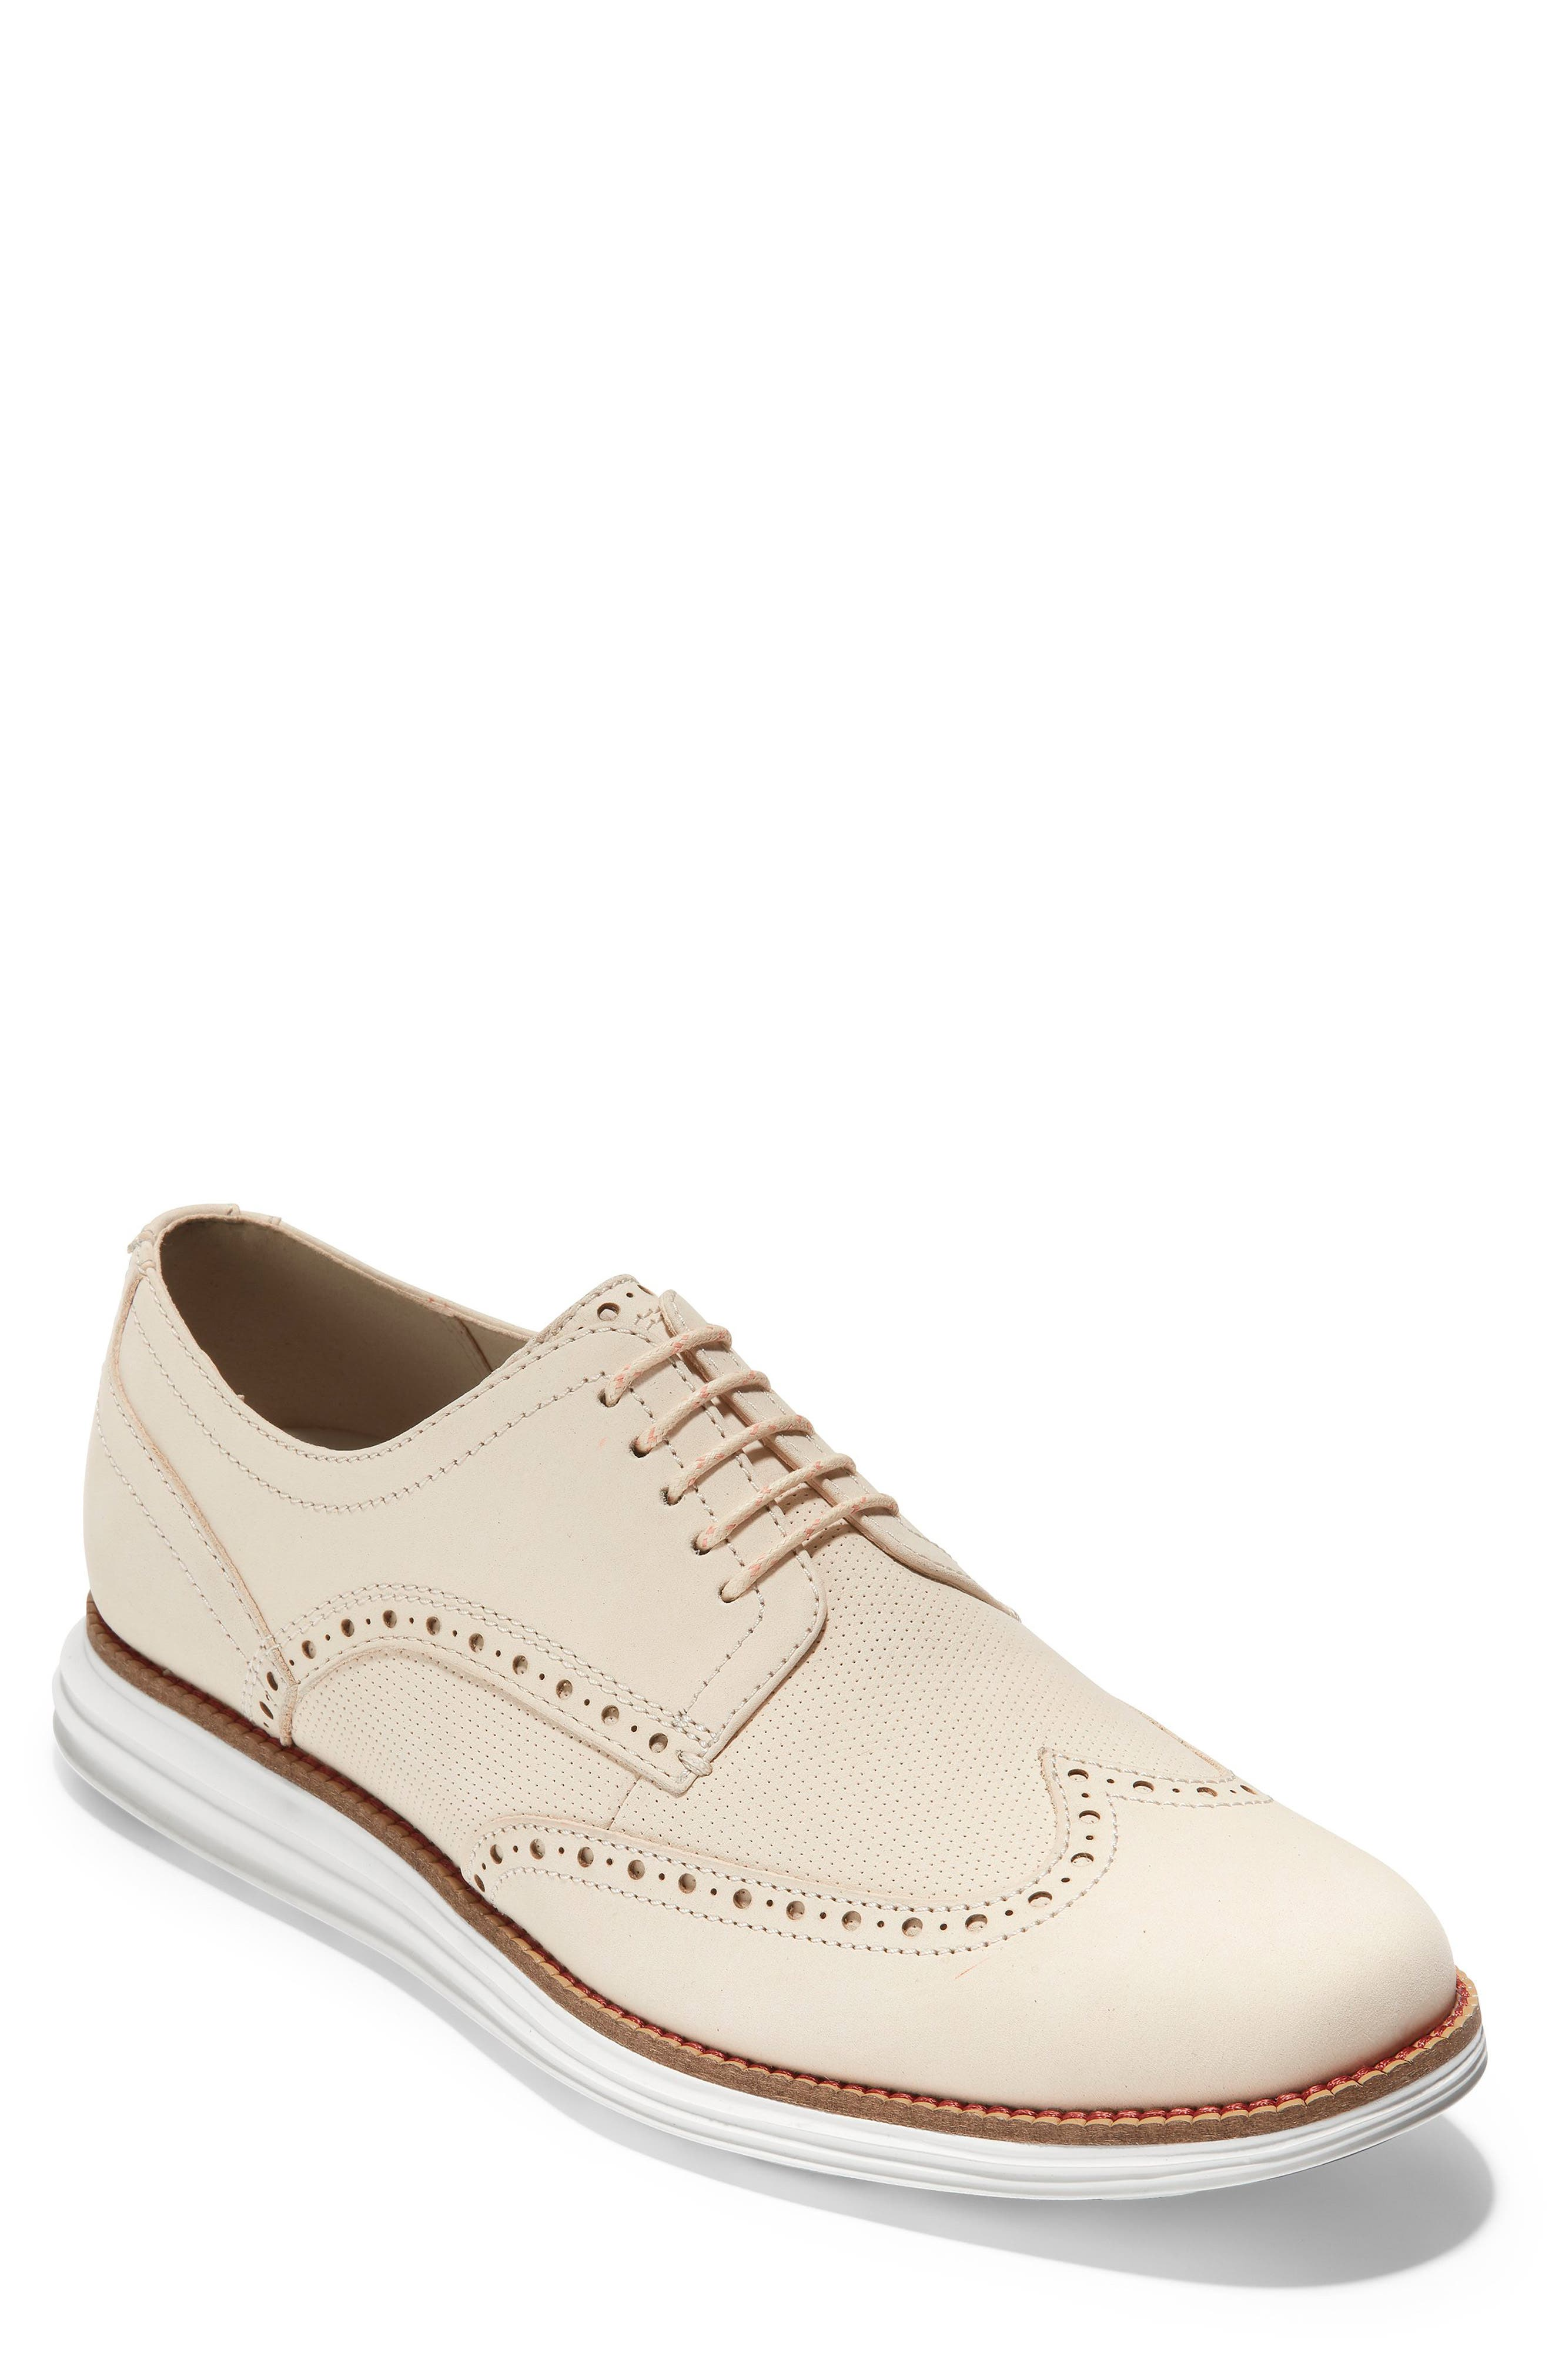 COLE HAAN, Original Grand Wingtip, Main thumbnail 1, color, SAND/ OPTIC WHITE NUBUCK